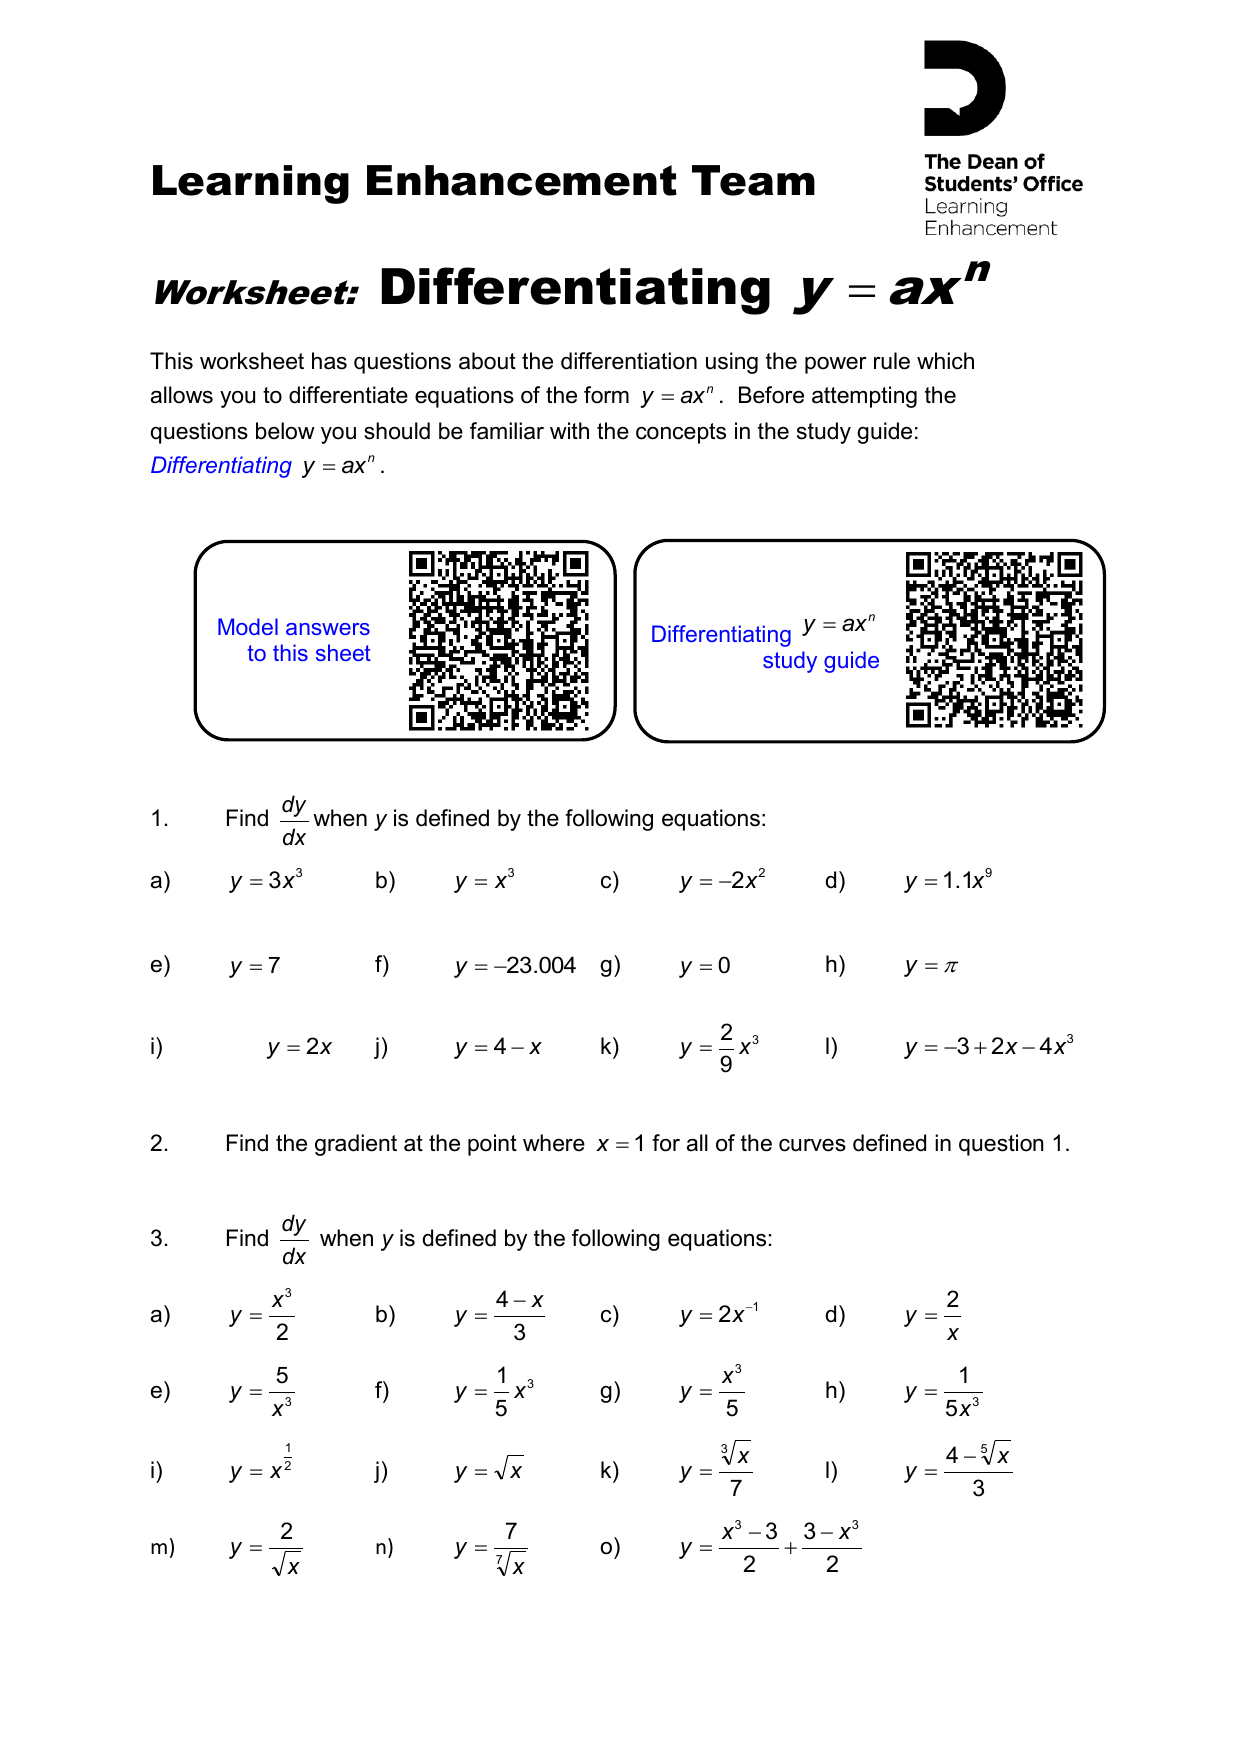 Differentiation Using The Power Rule Worksheet